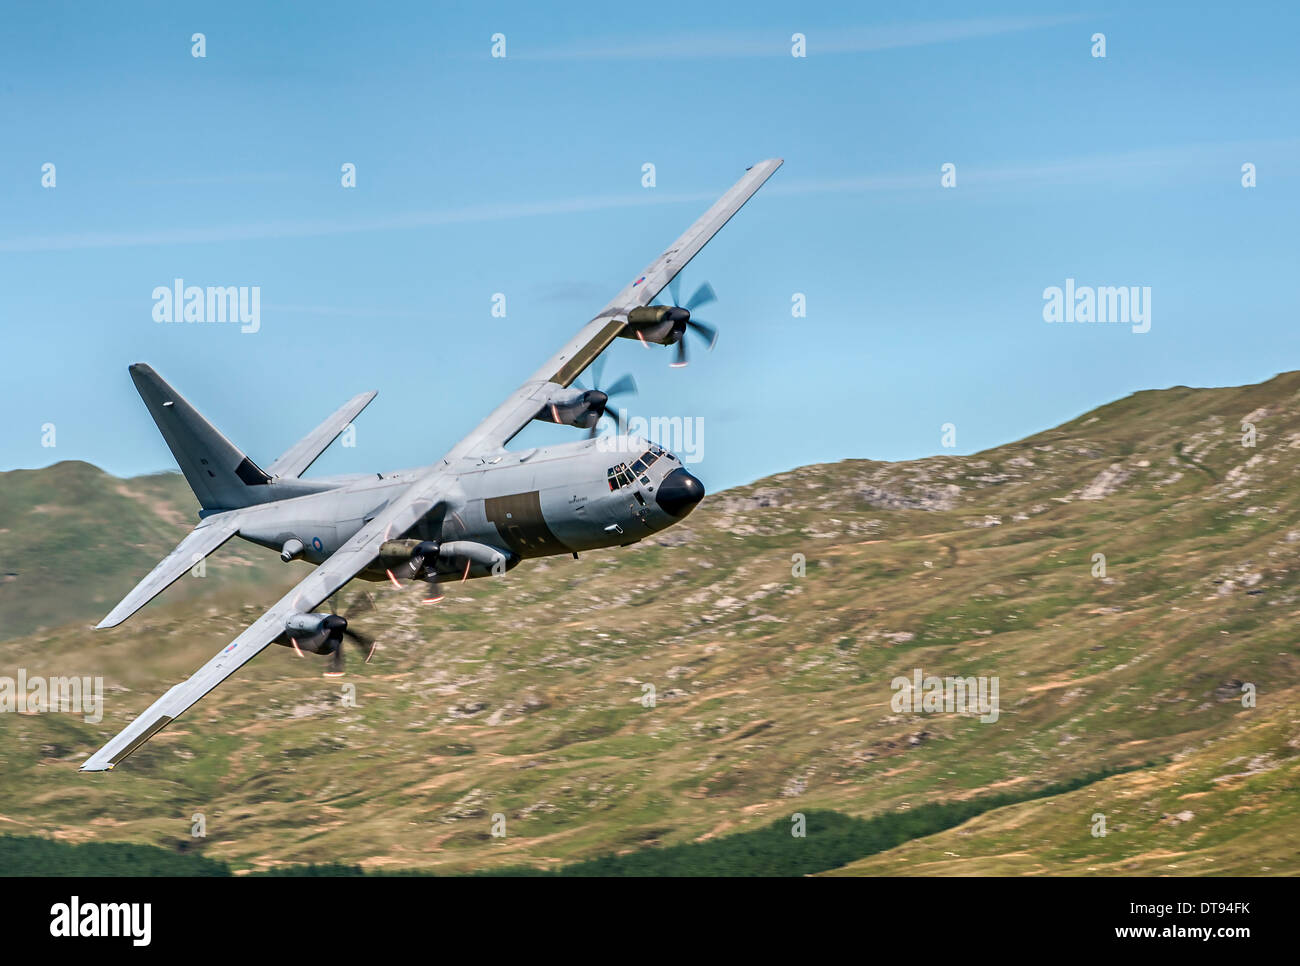 The C-130 Hercules tactical transport aircraft  lowe level flying north wales - Stock Image